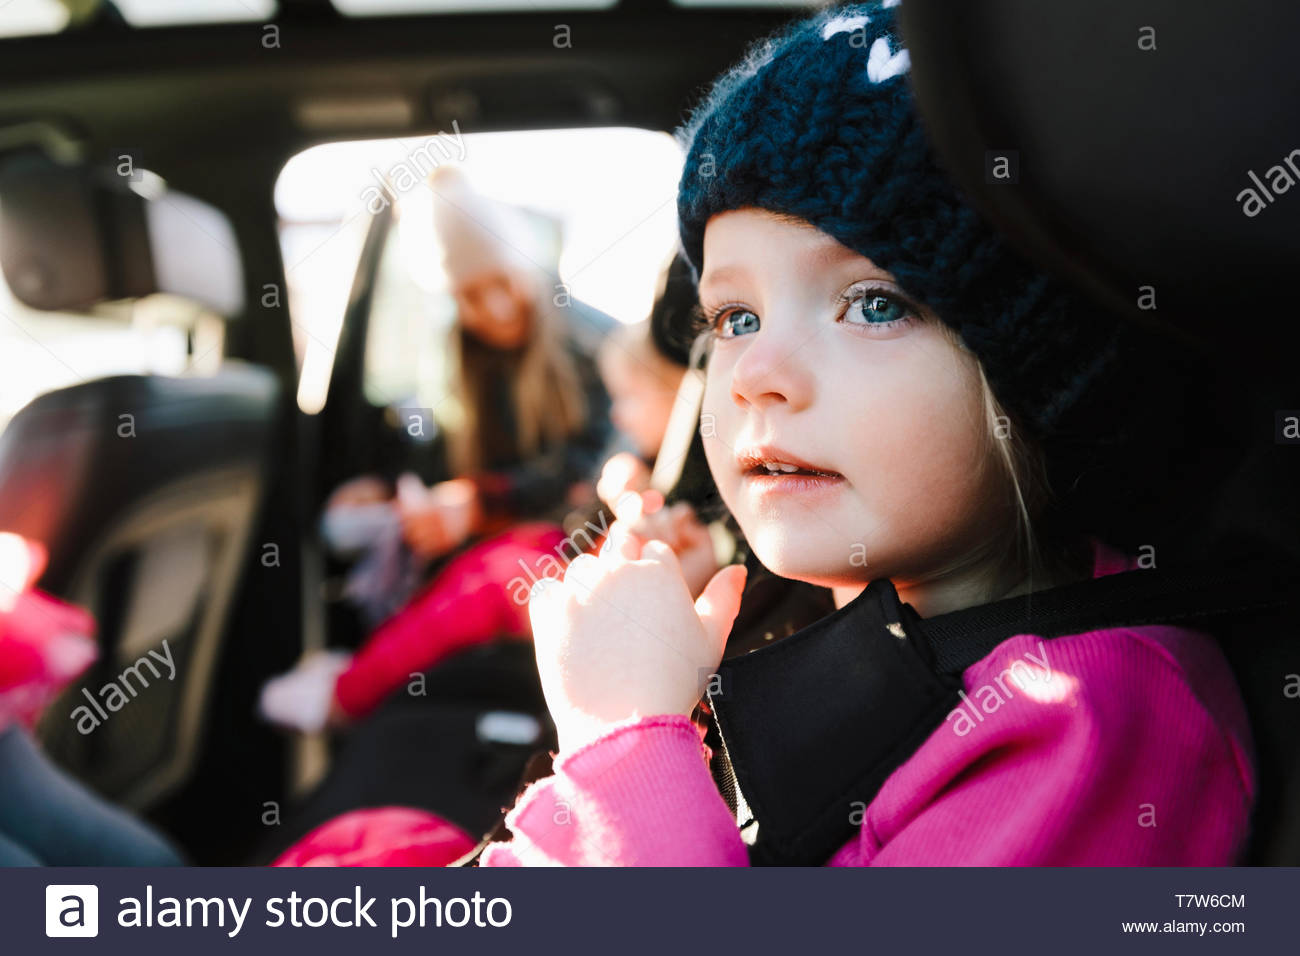 Cute girl in back seat of car Photo Stock